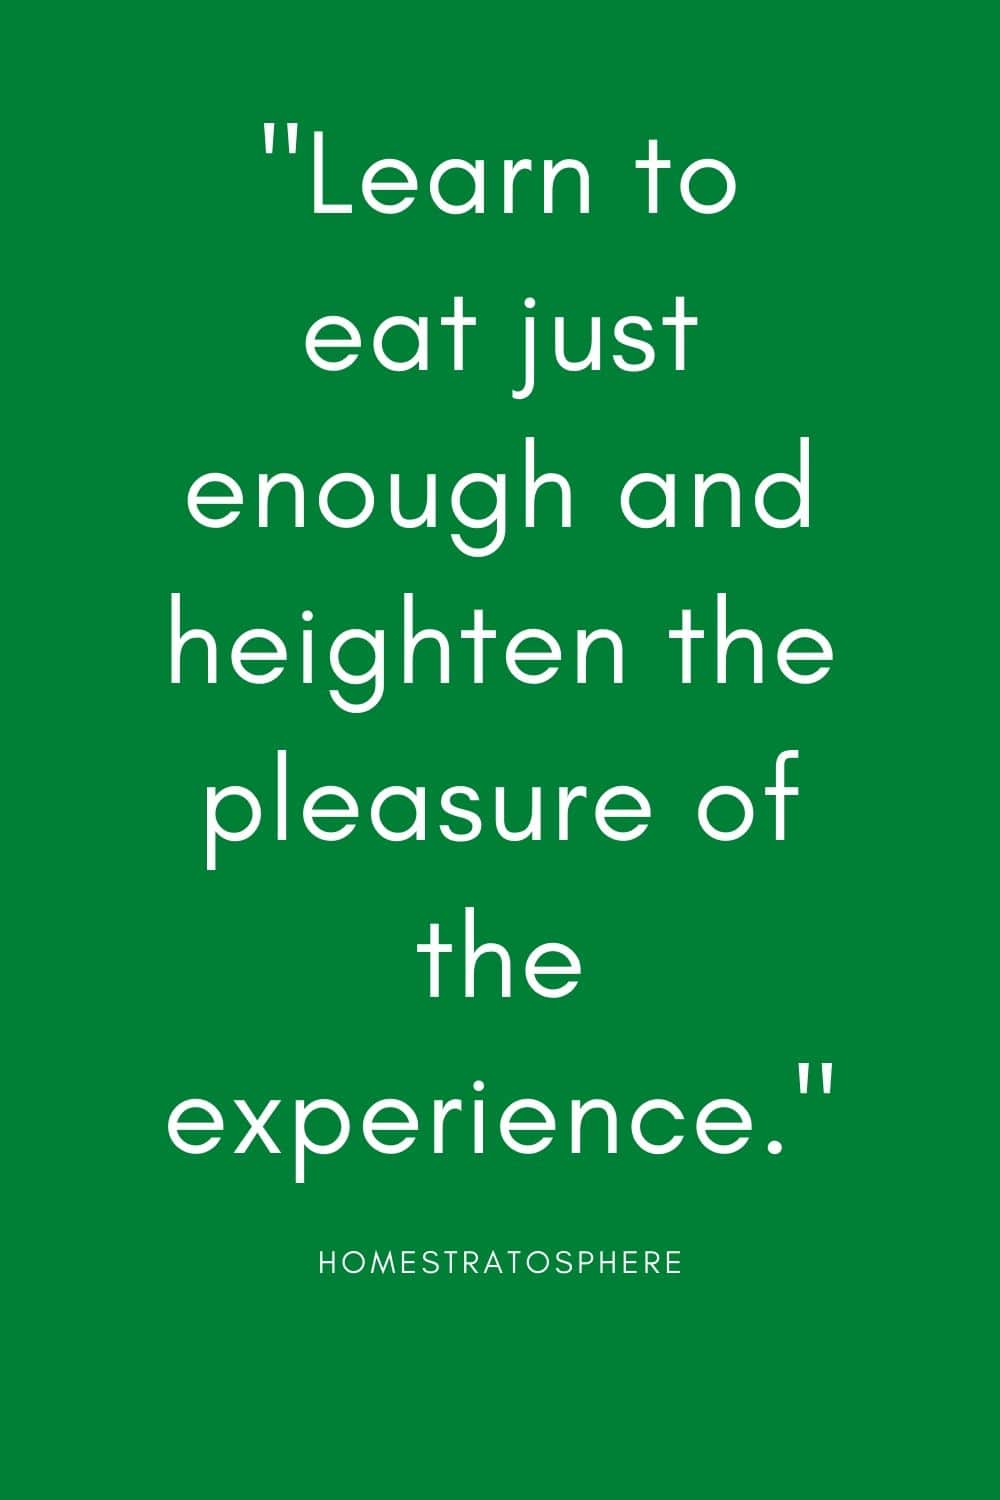 """Learn to eat just enough and heighten the pleasure of the experience."""